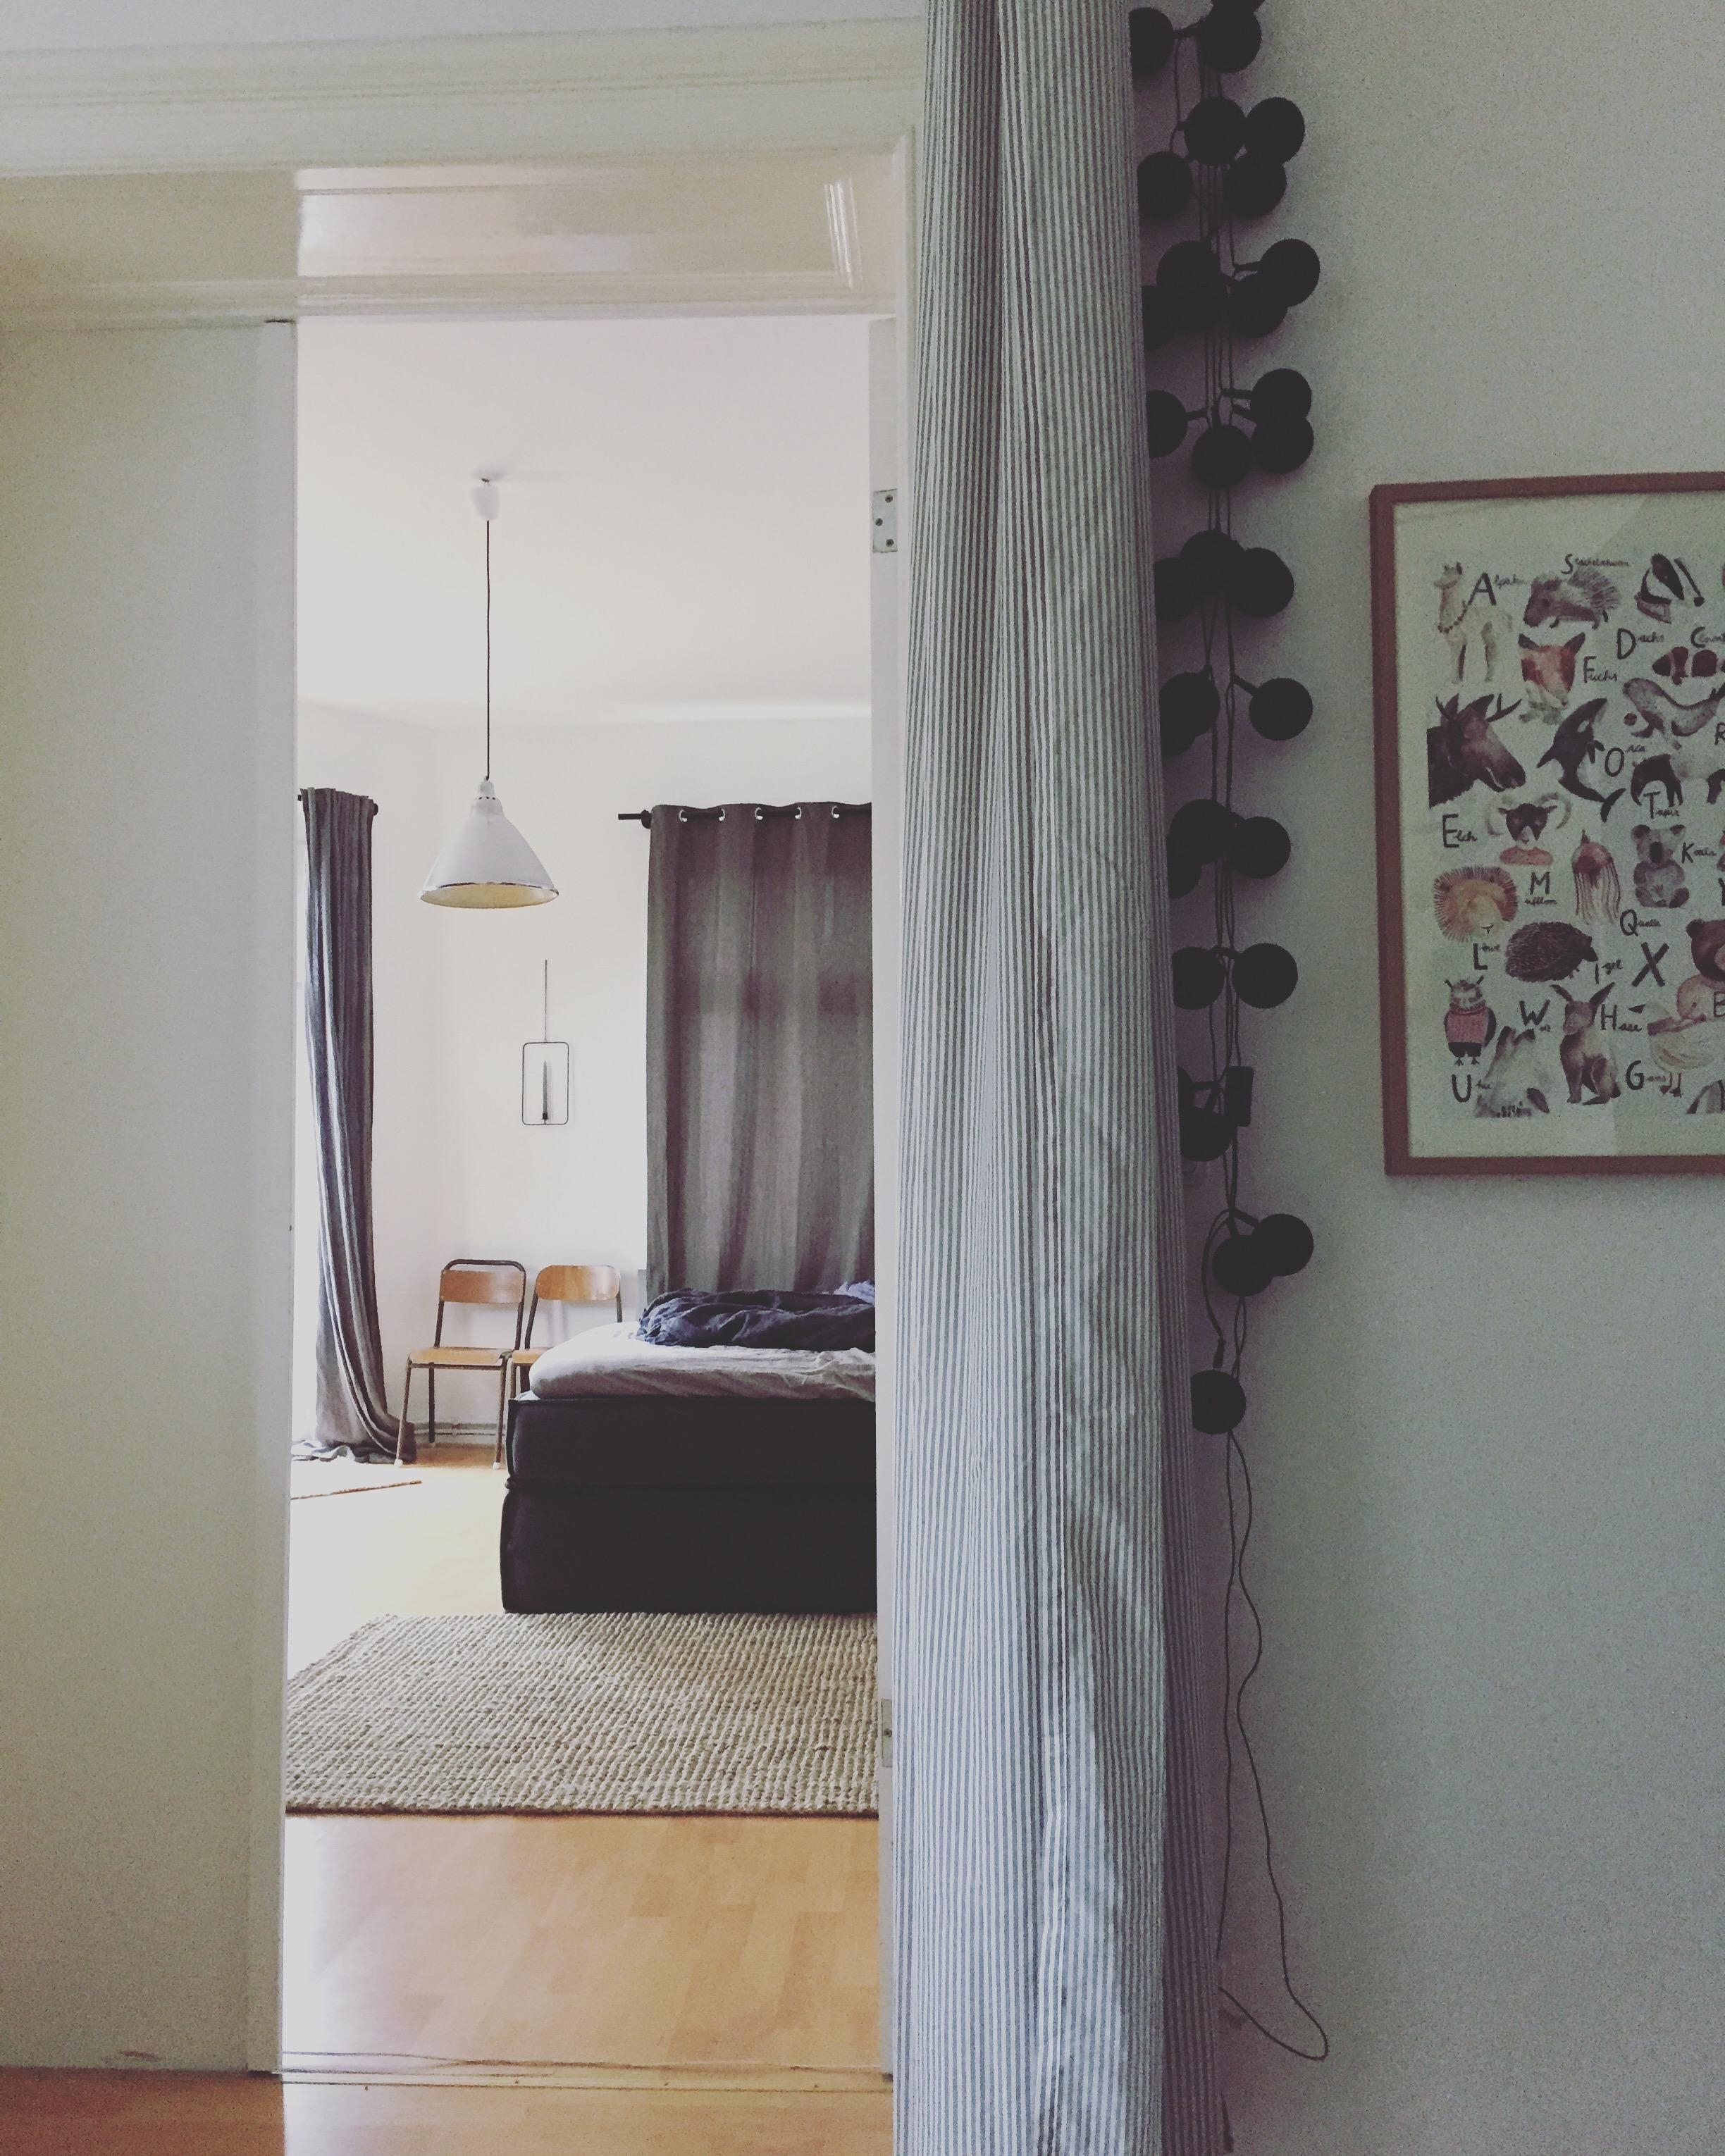 Einblick